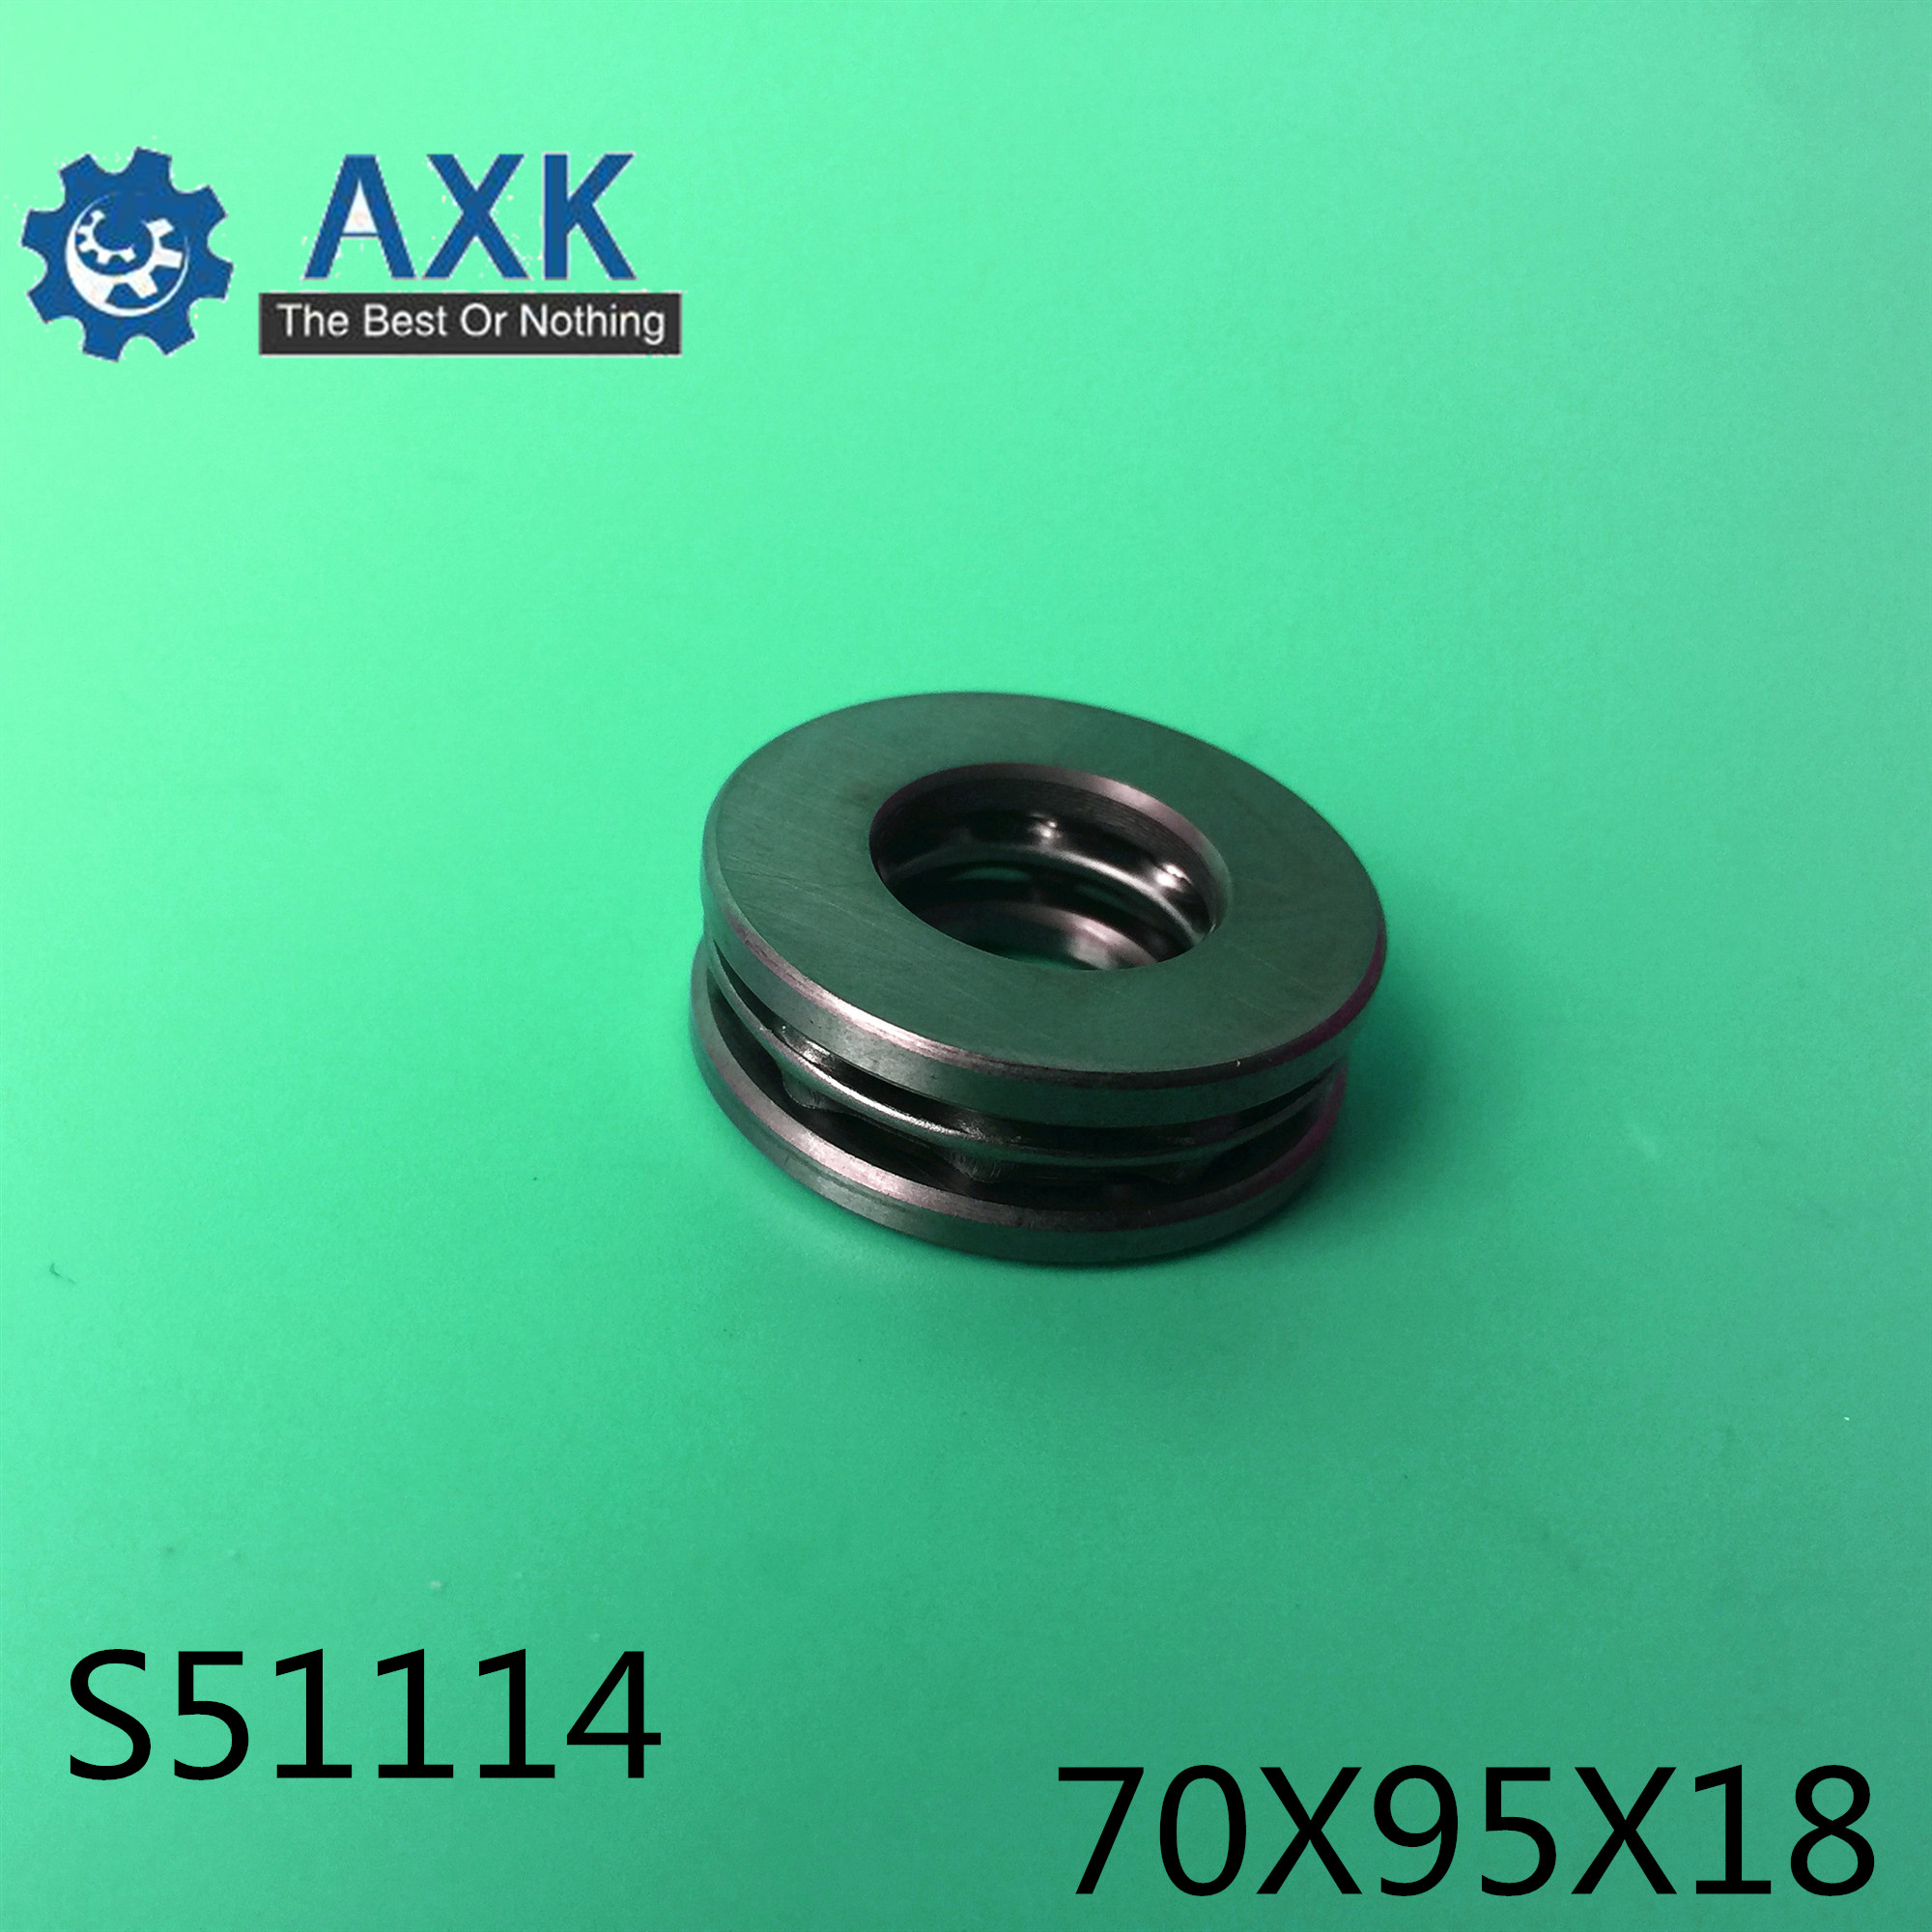 S51114 Bearing 70*95*18 mm( 1PC ) ABEC-1 Stainless Steel Thrust S 51114 Ball BearingsS51114 Bearing 70*95*18 mm( 1PC ) ABEC-1 Stainless Steel Thrust S 51114 Ball Bearings